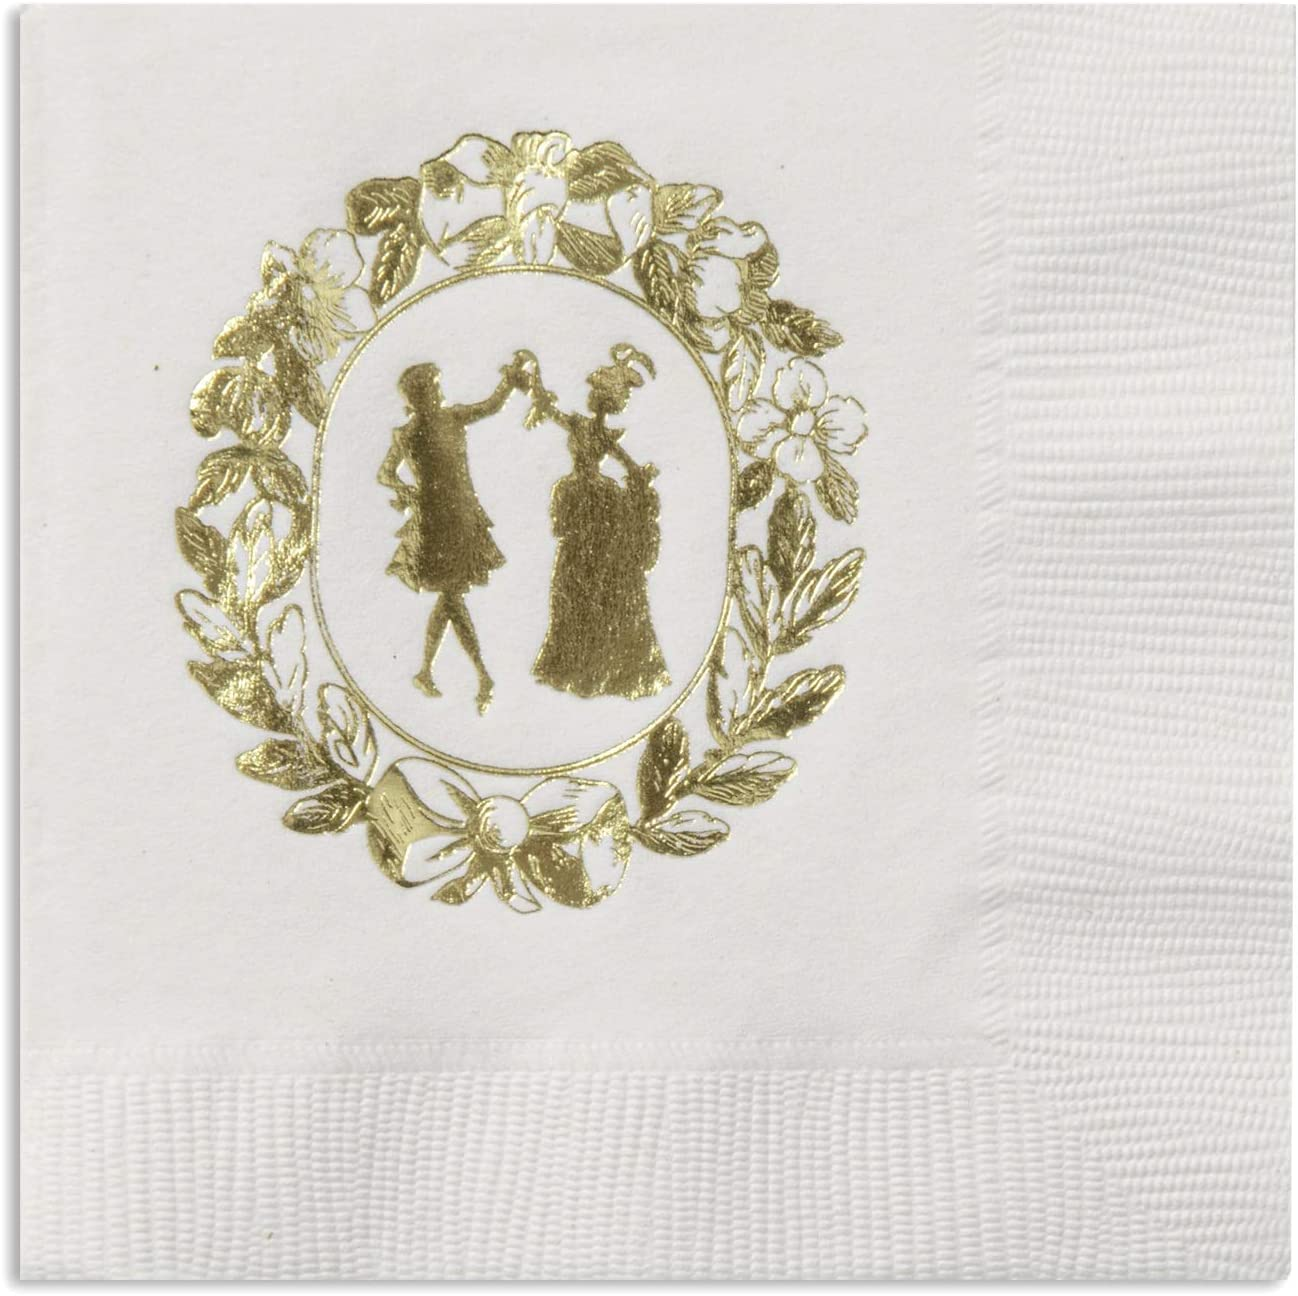 Cocktail Napkins for Wedding Reception Paper Napkins Decorative Disposable, Engagement Party, Him and Her Wedding Decorations 5